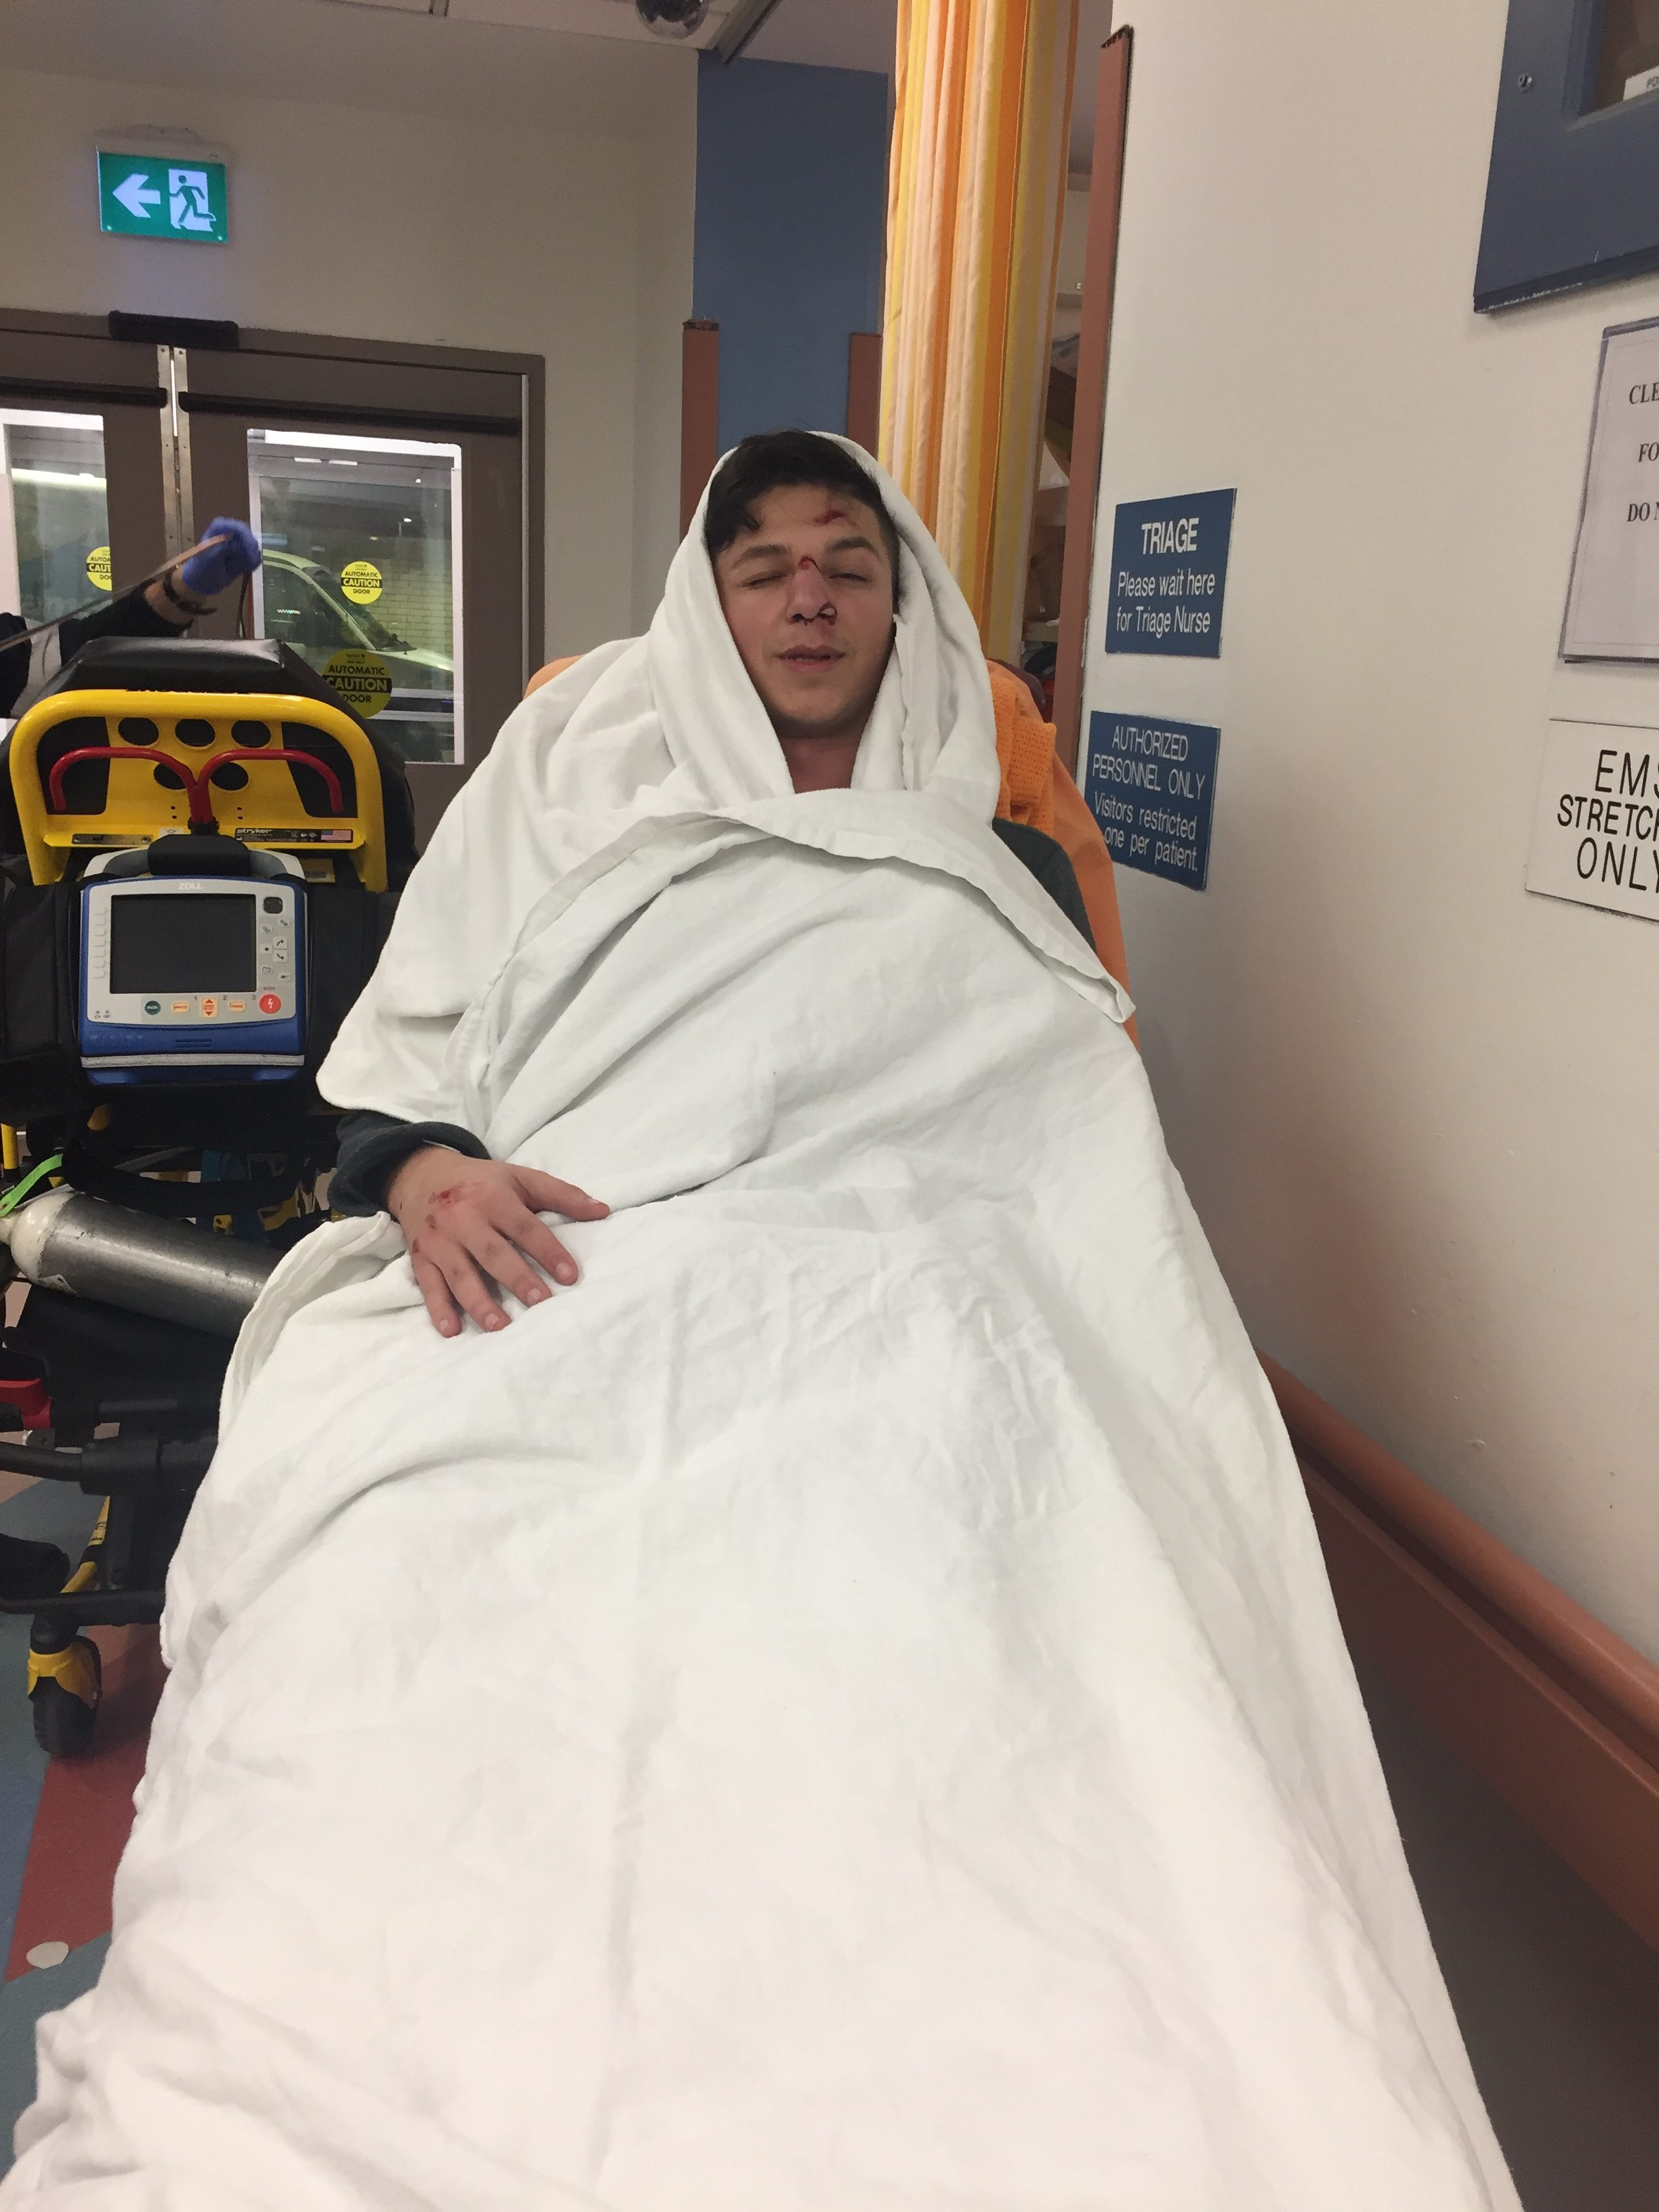 Thomas in the hospital after the accident